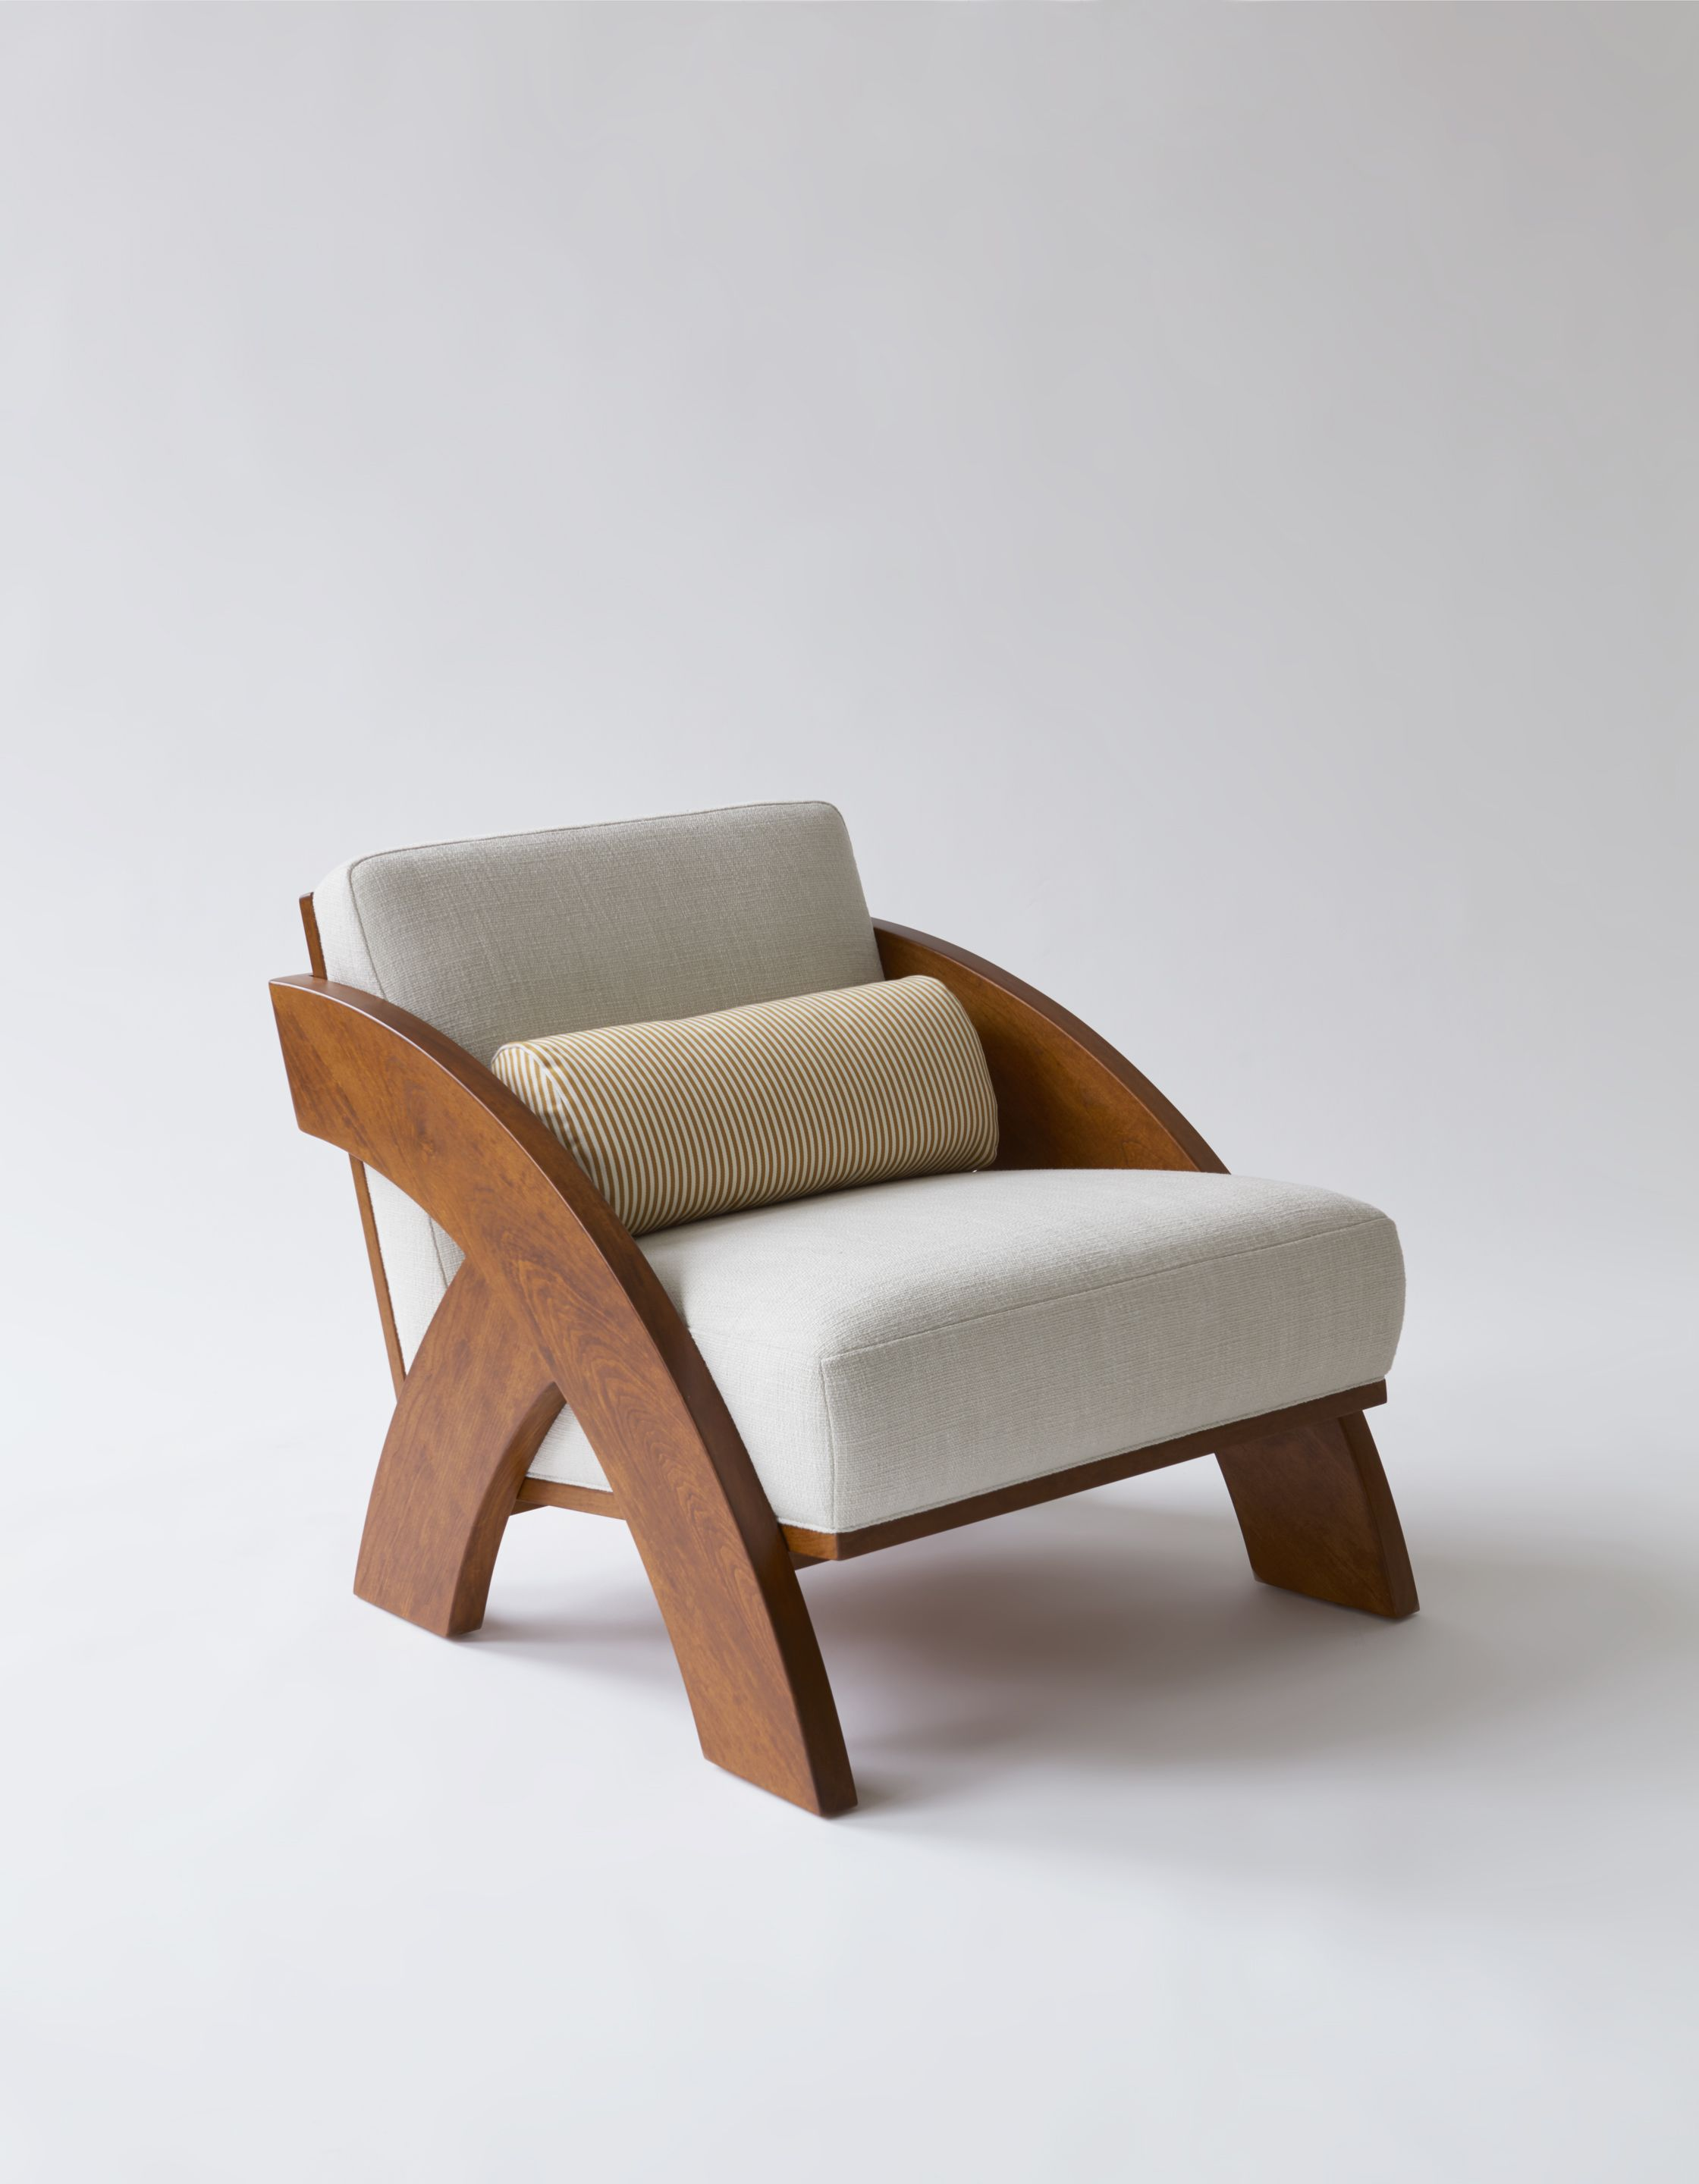 Arc Lounge Chair Designed By Syrette Lew Of Moving Mountains